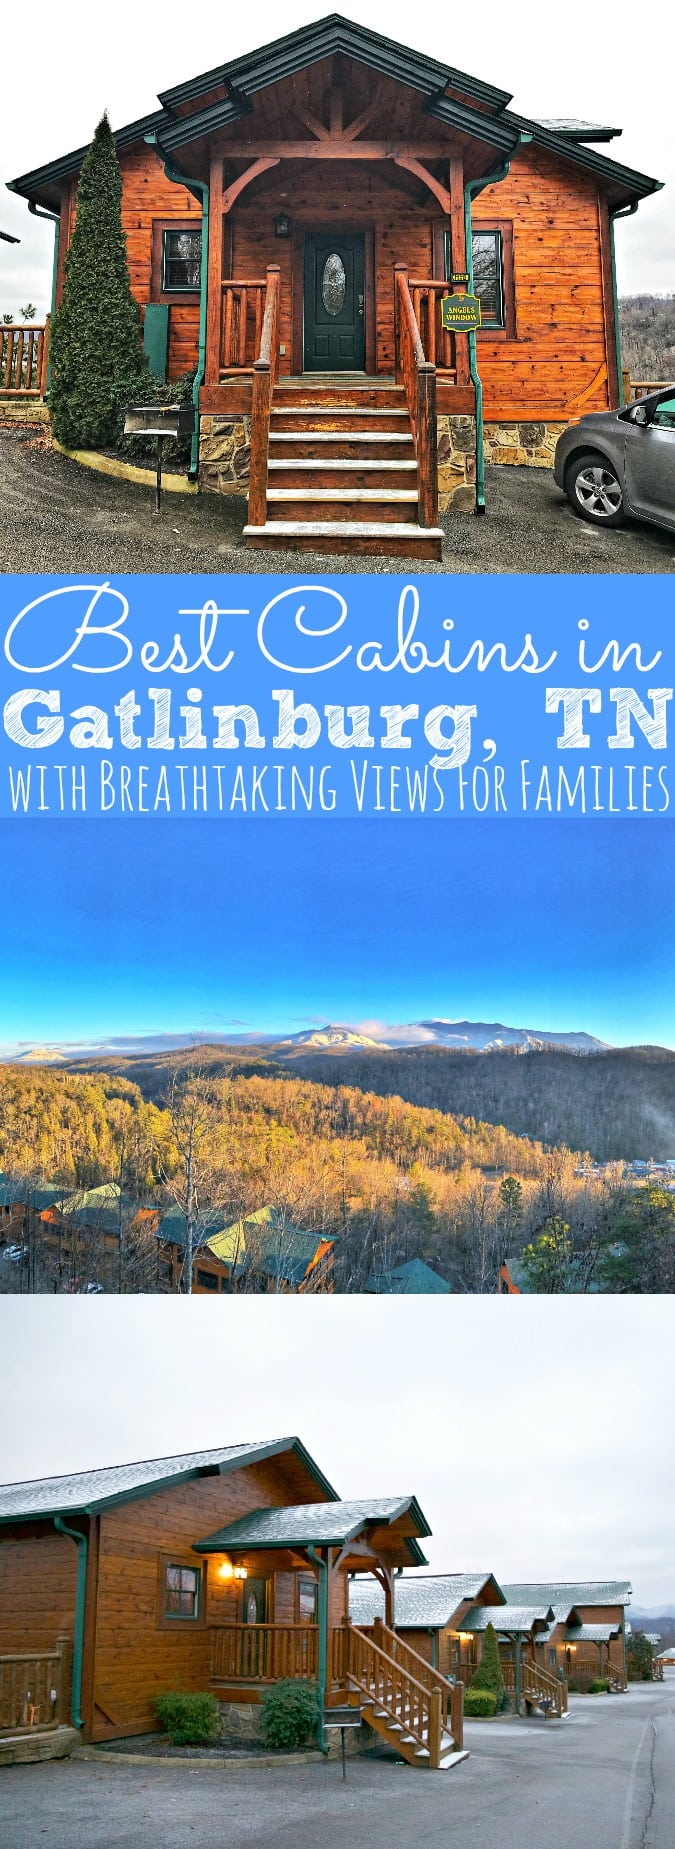 Best Cabins In Gatlinburg For Families With Breathtaking Views